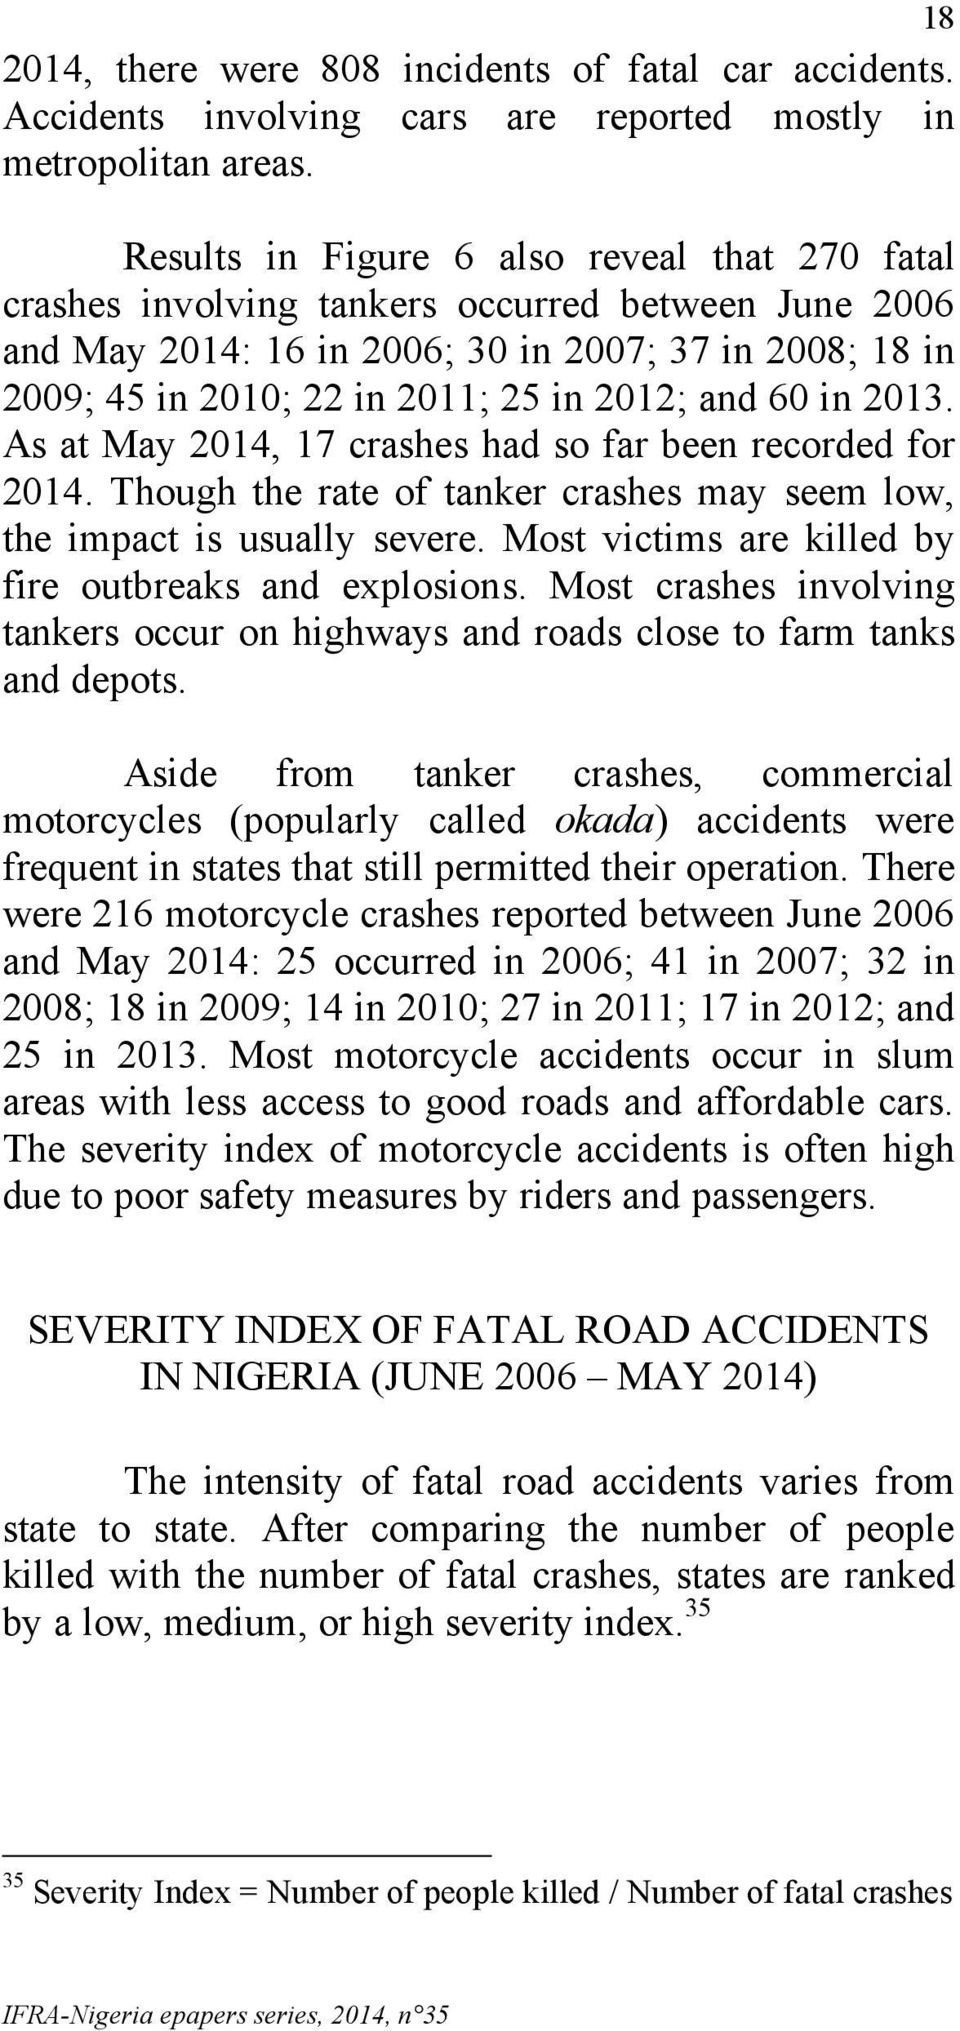 and 60 in 2013. As at May 2014, 17 crashes had so far been recorded for 2014. Though the rate of tanker crashes may seem low, the impact is usually severe.